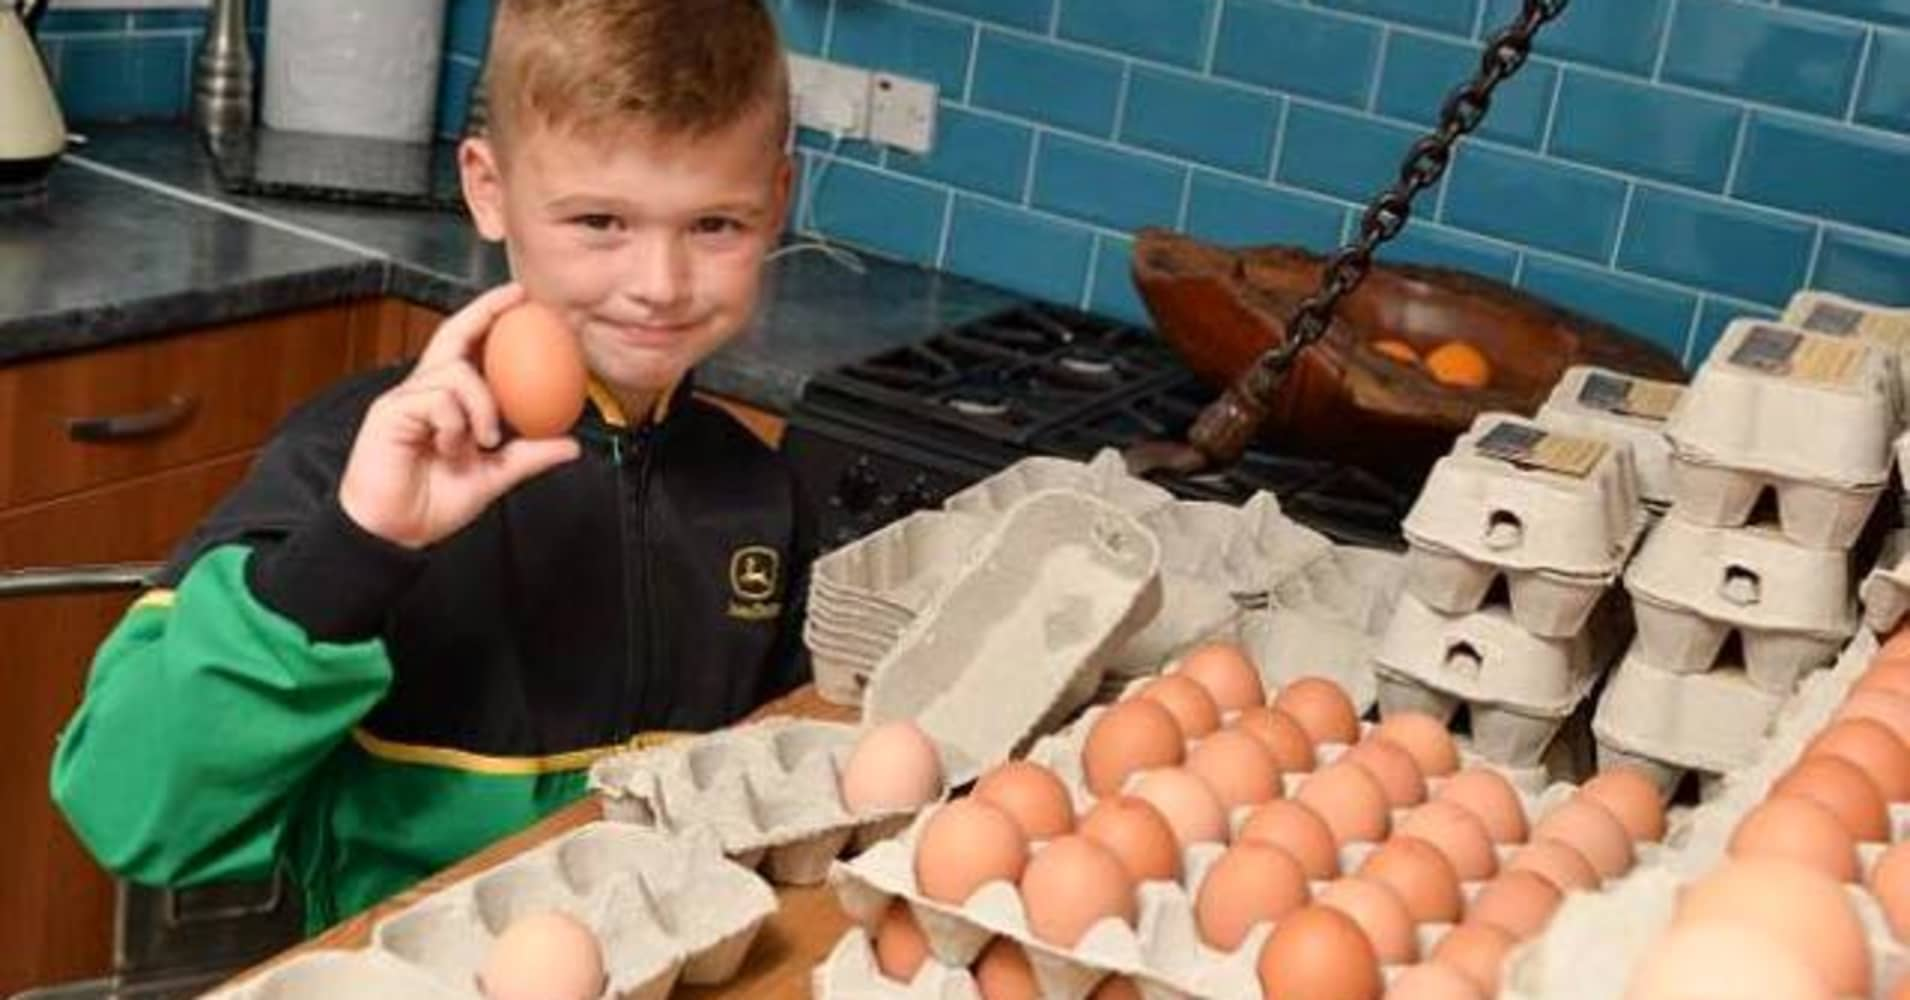 Eight-year-old Junior-James Wyatt founded his own egg delivery business.